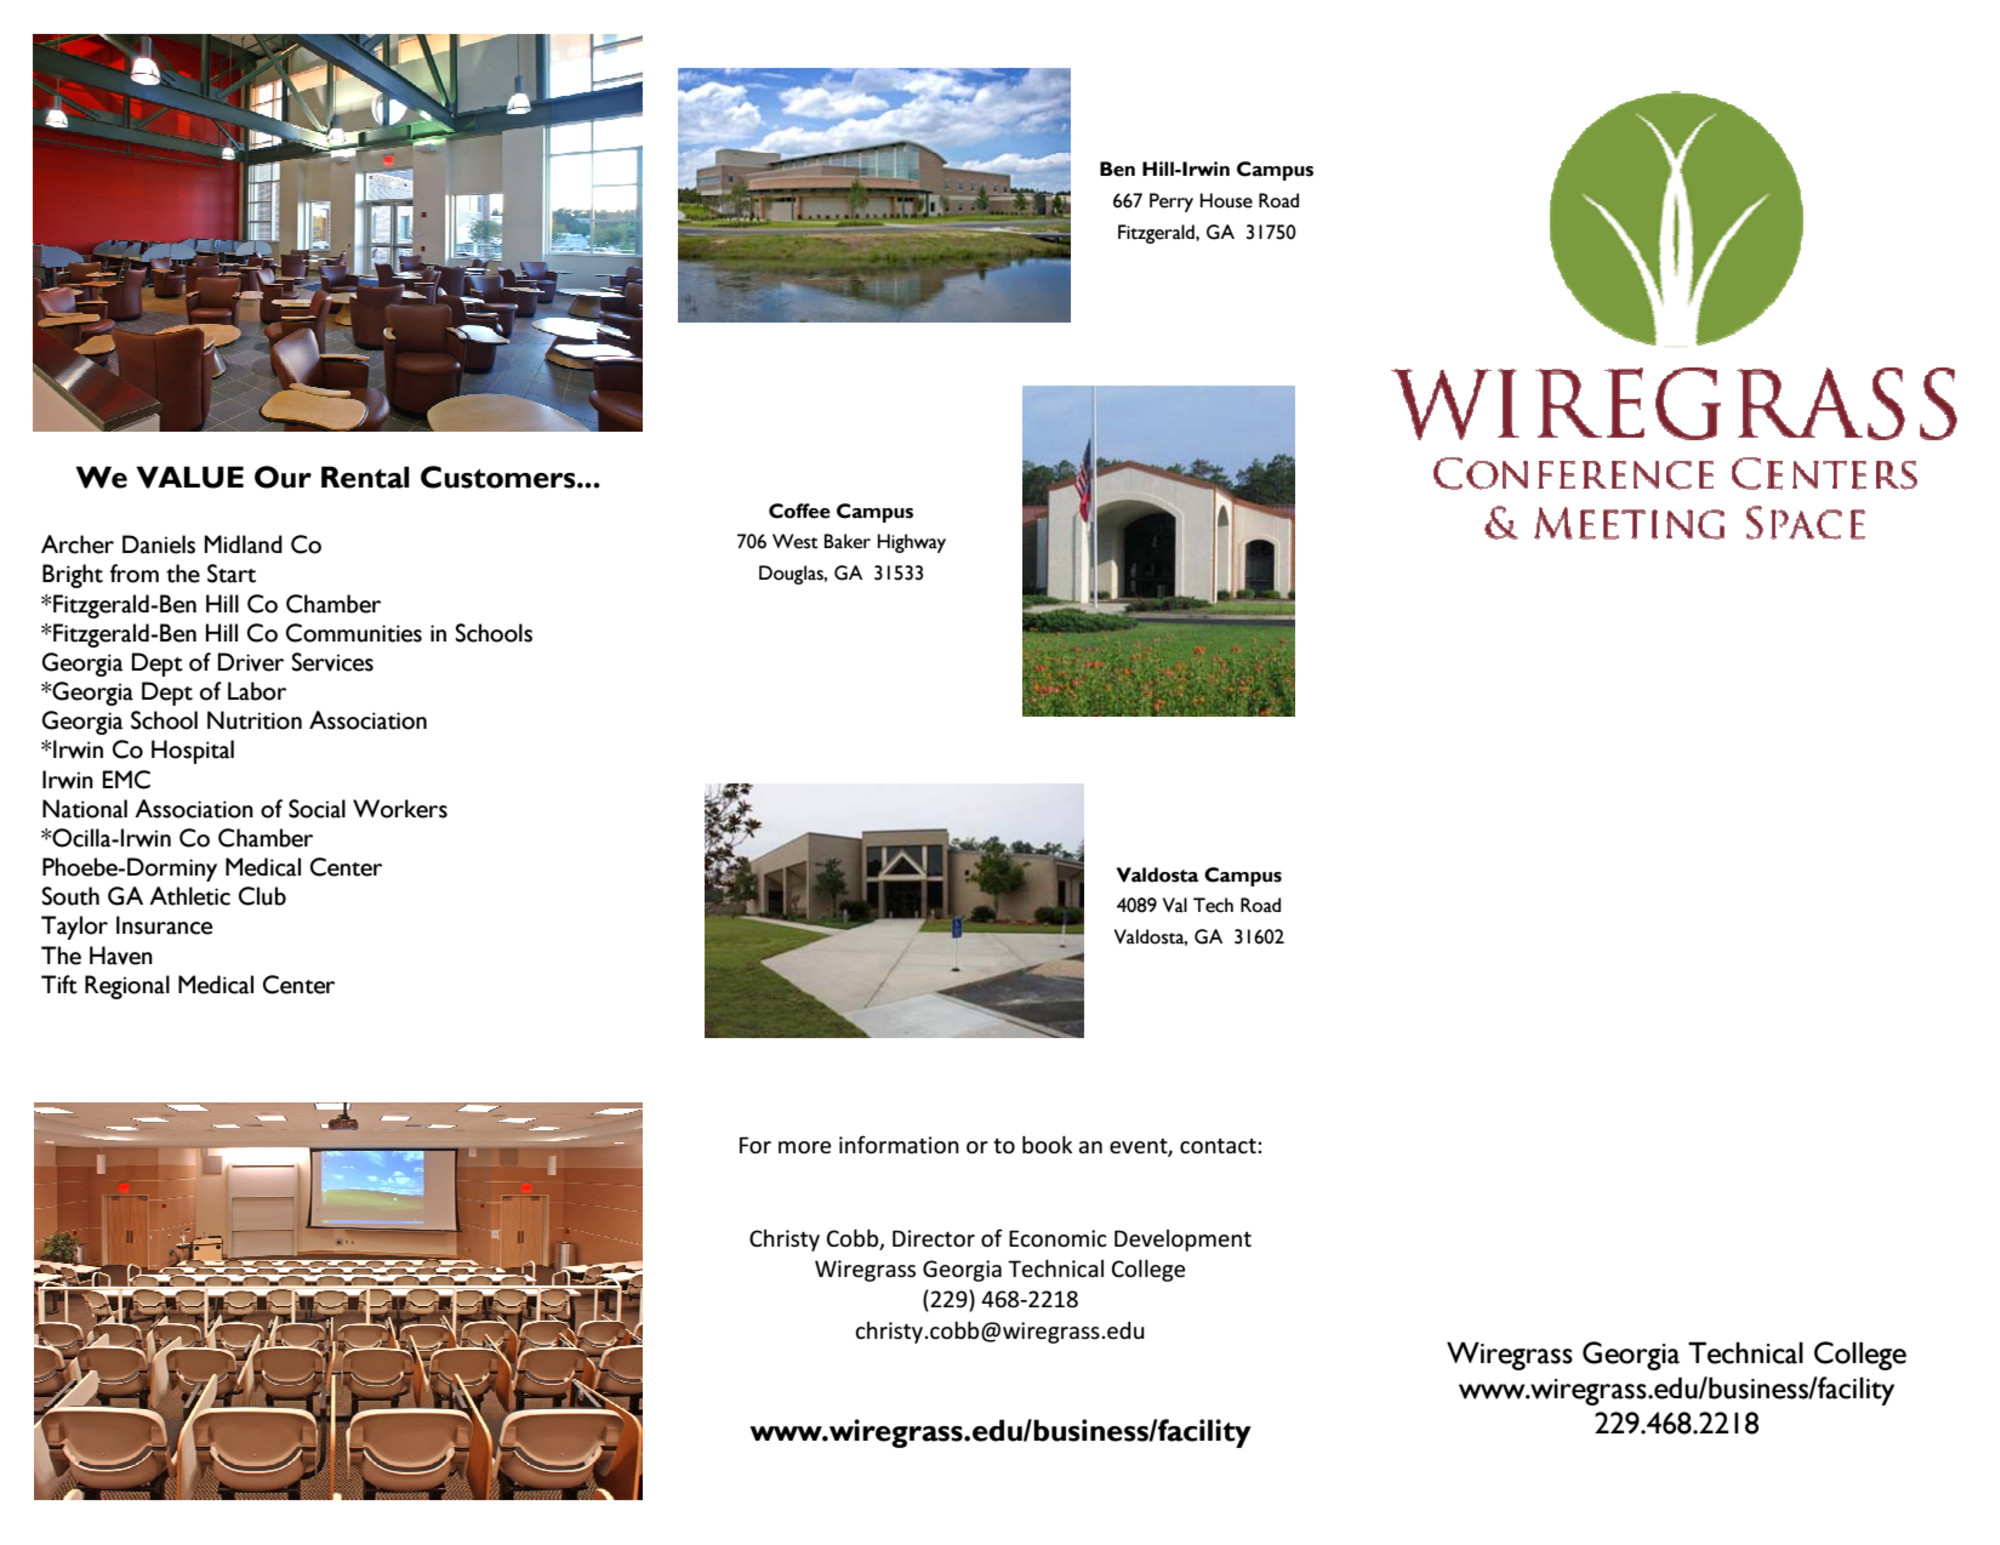 WGTC Facility Rental Brochure